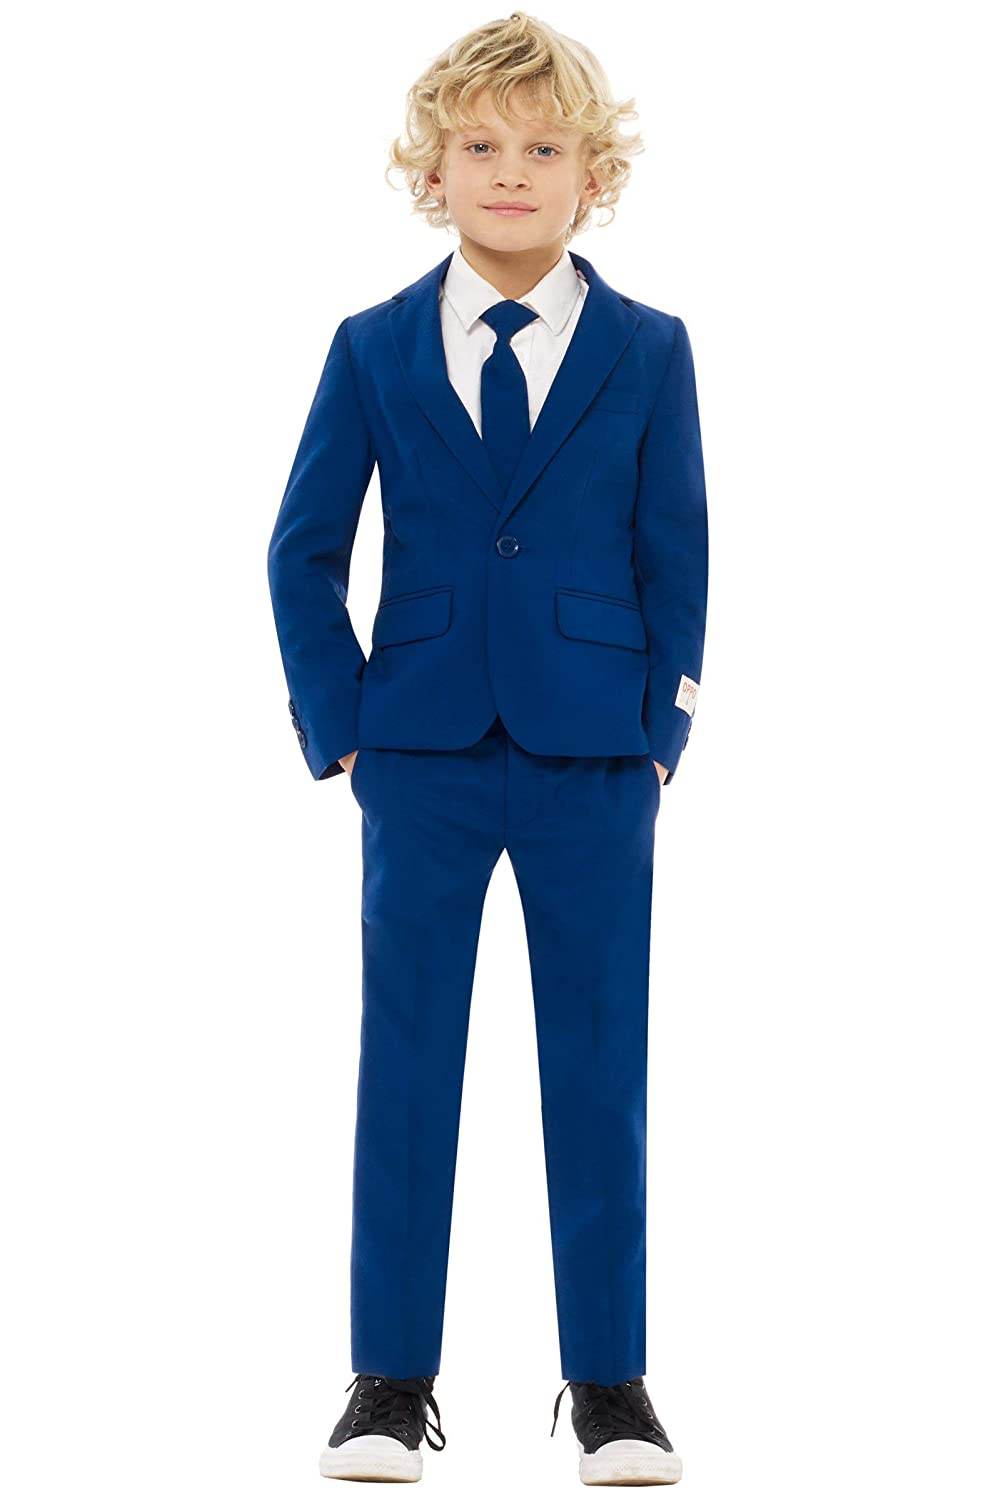 Navy Royale 10 Opposuits Crazy Suits for Boys in Different Prints – Comes with Jacket, Pants and Tie In Funny Designs